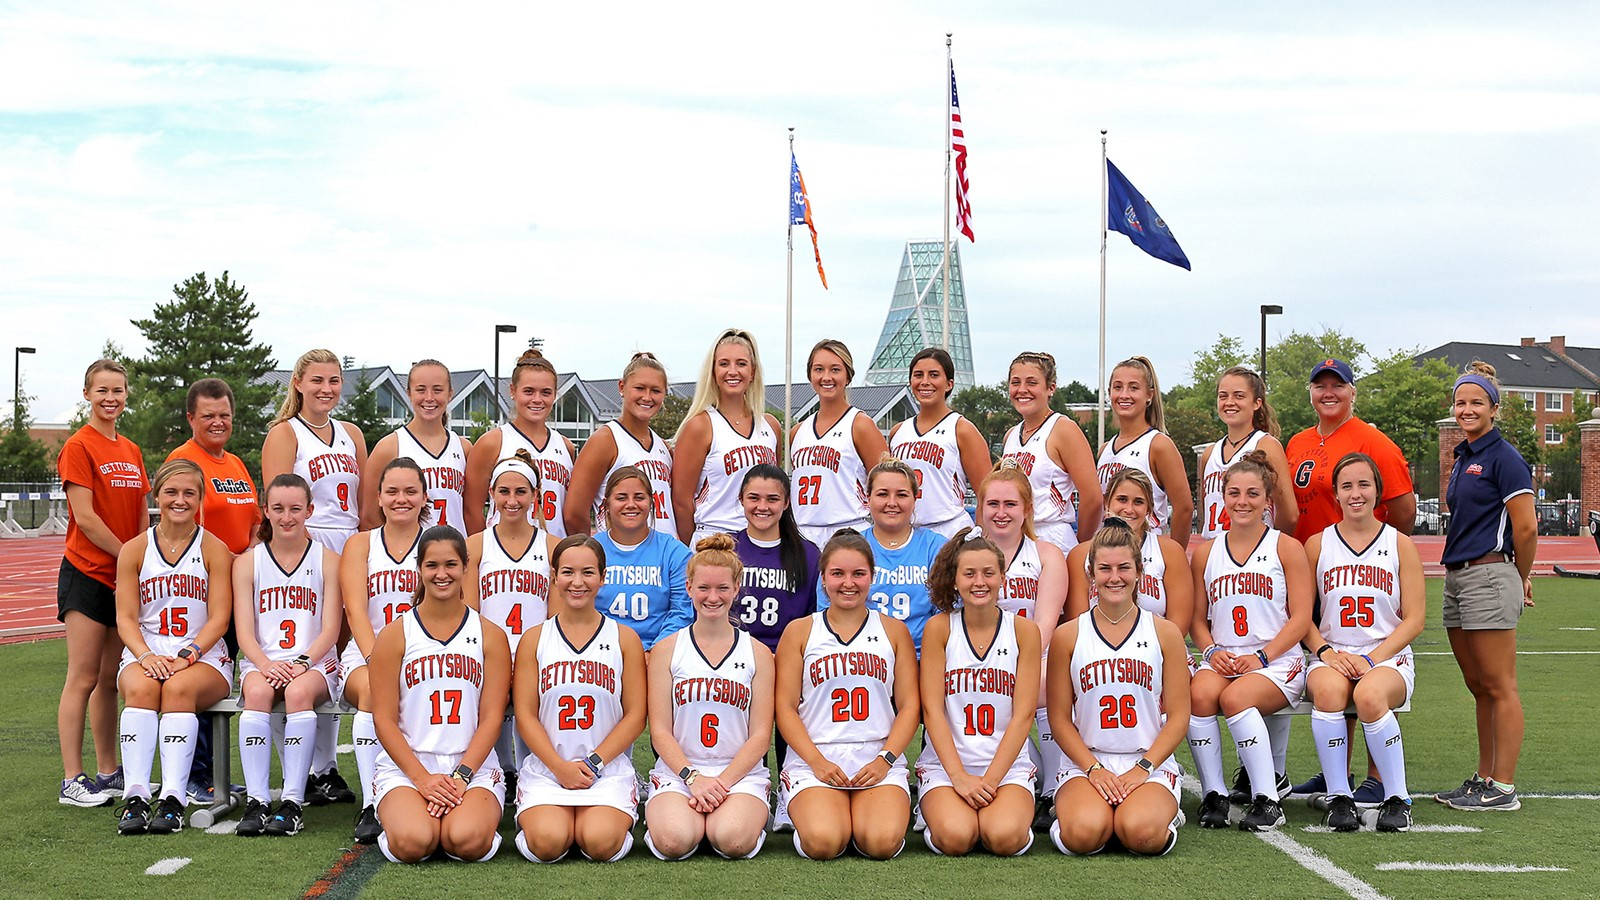 The 2019 field hockey team (Photo courtesy of Gettysburg College Athletics)